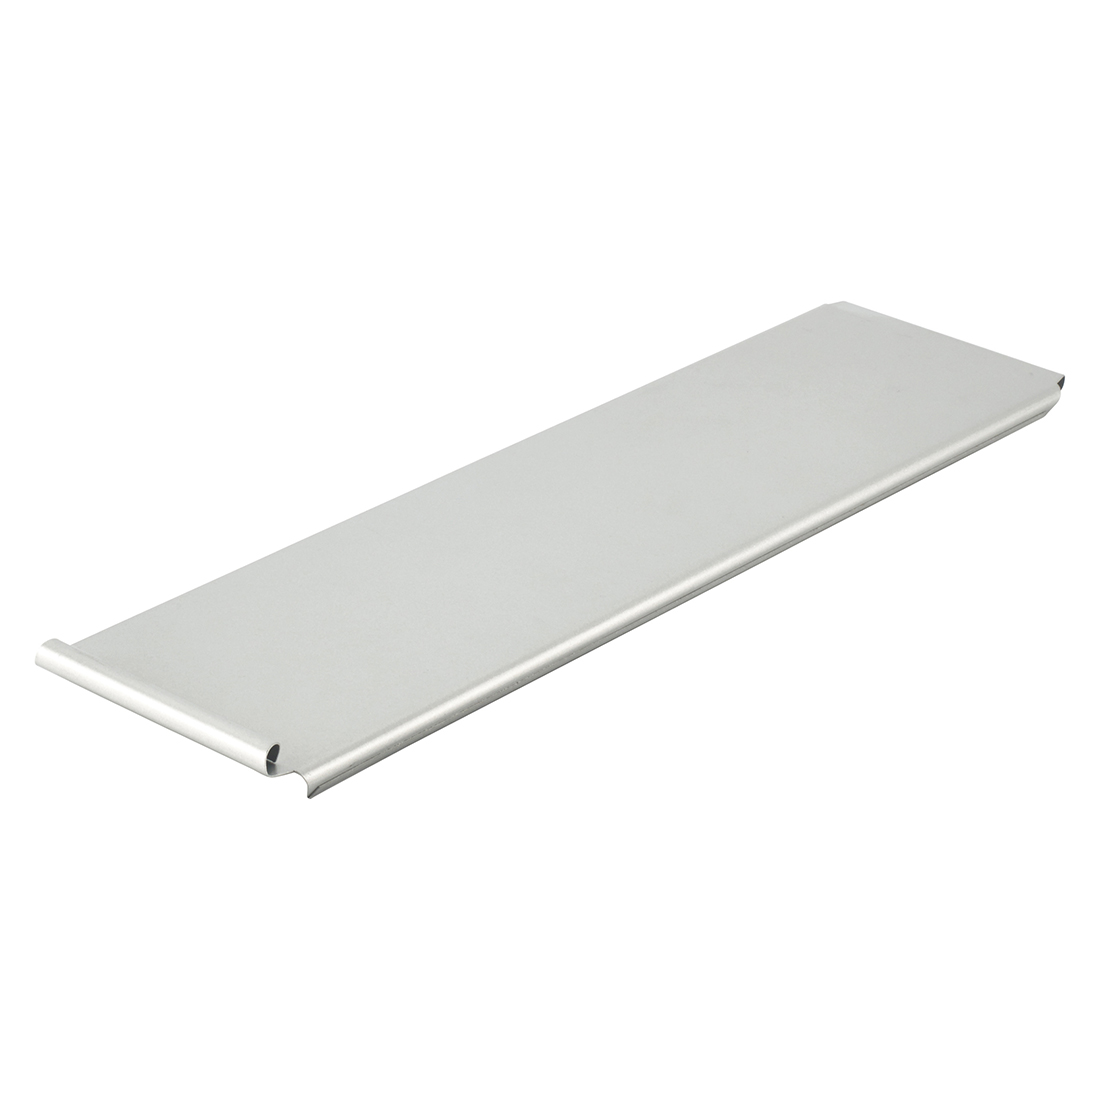 "Winco HPP-15L Sliding Cover, 14-1/2"" x 4-1/2"" x 1/2"", Aluminized Steel"